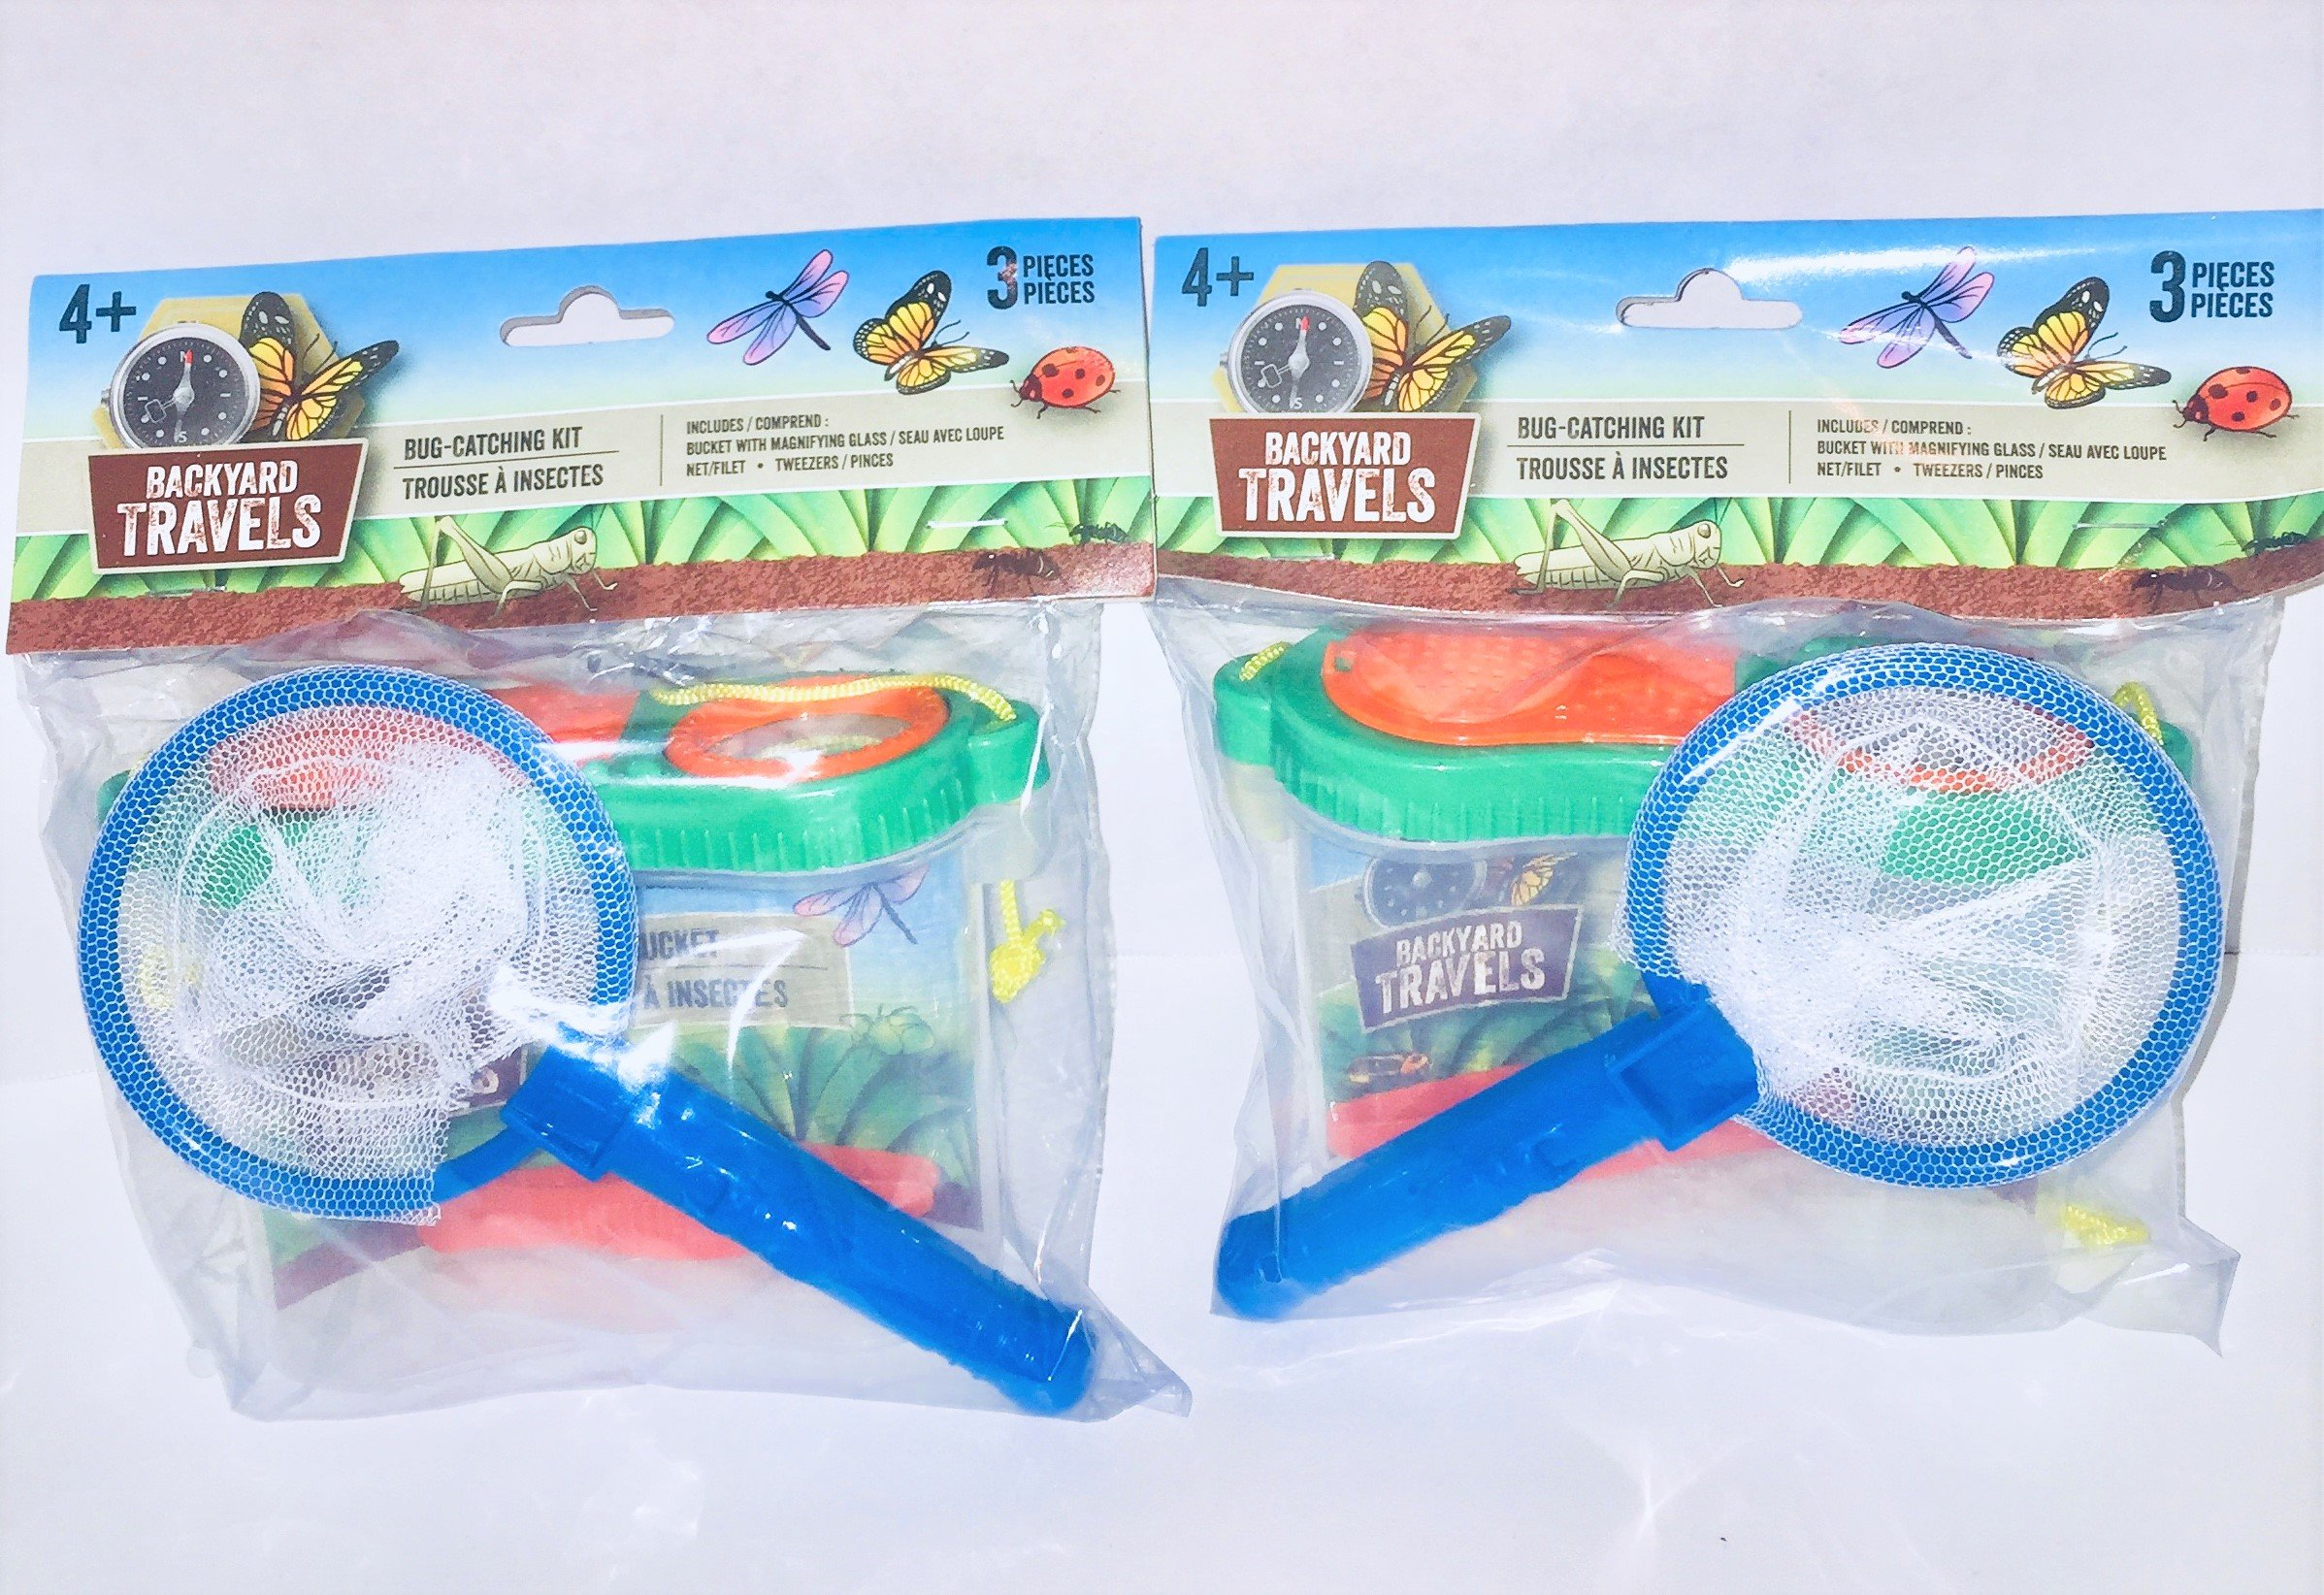 Set of 2 Backyard Travels Bug Catching Kits - Each has Tweezers, Bug Catching Net, Bug Bucket with Magnifying Glass - colors may vary